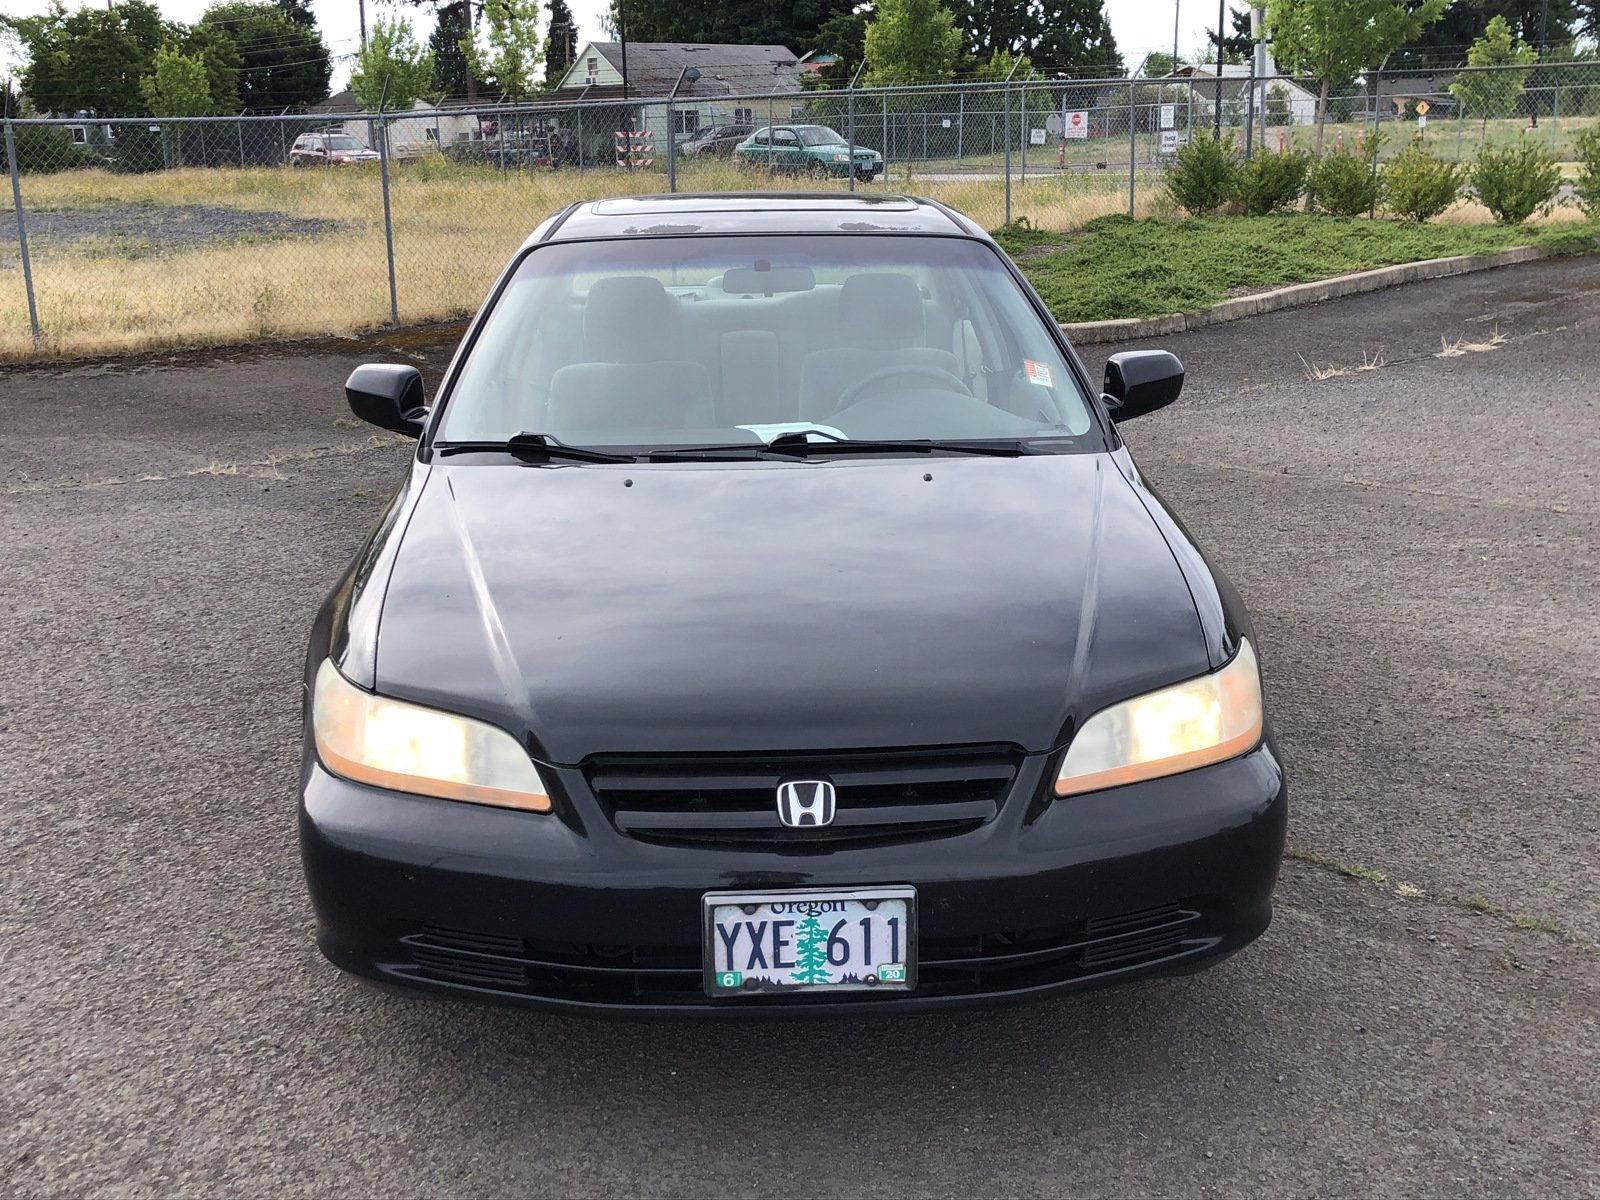 Pre-Owned 2002 Honda Accord Sdn SE